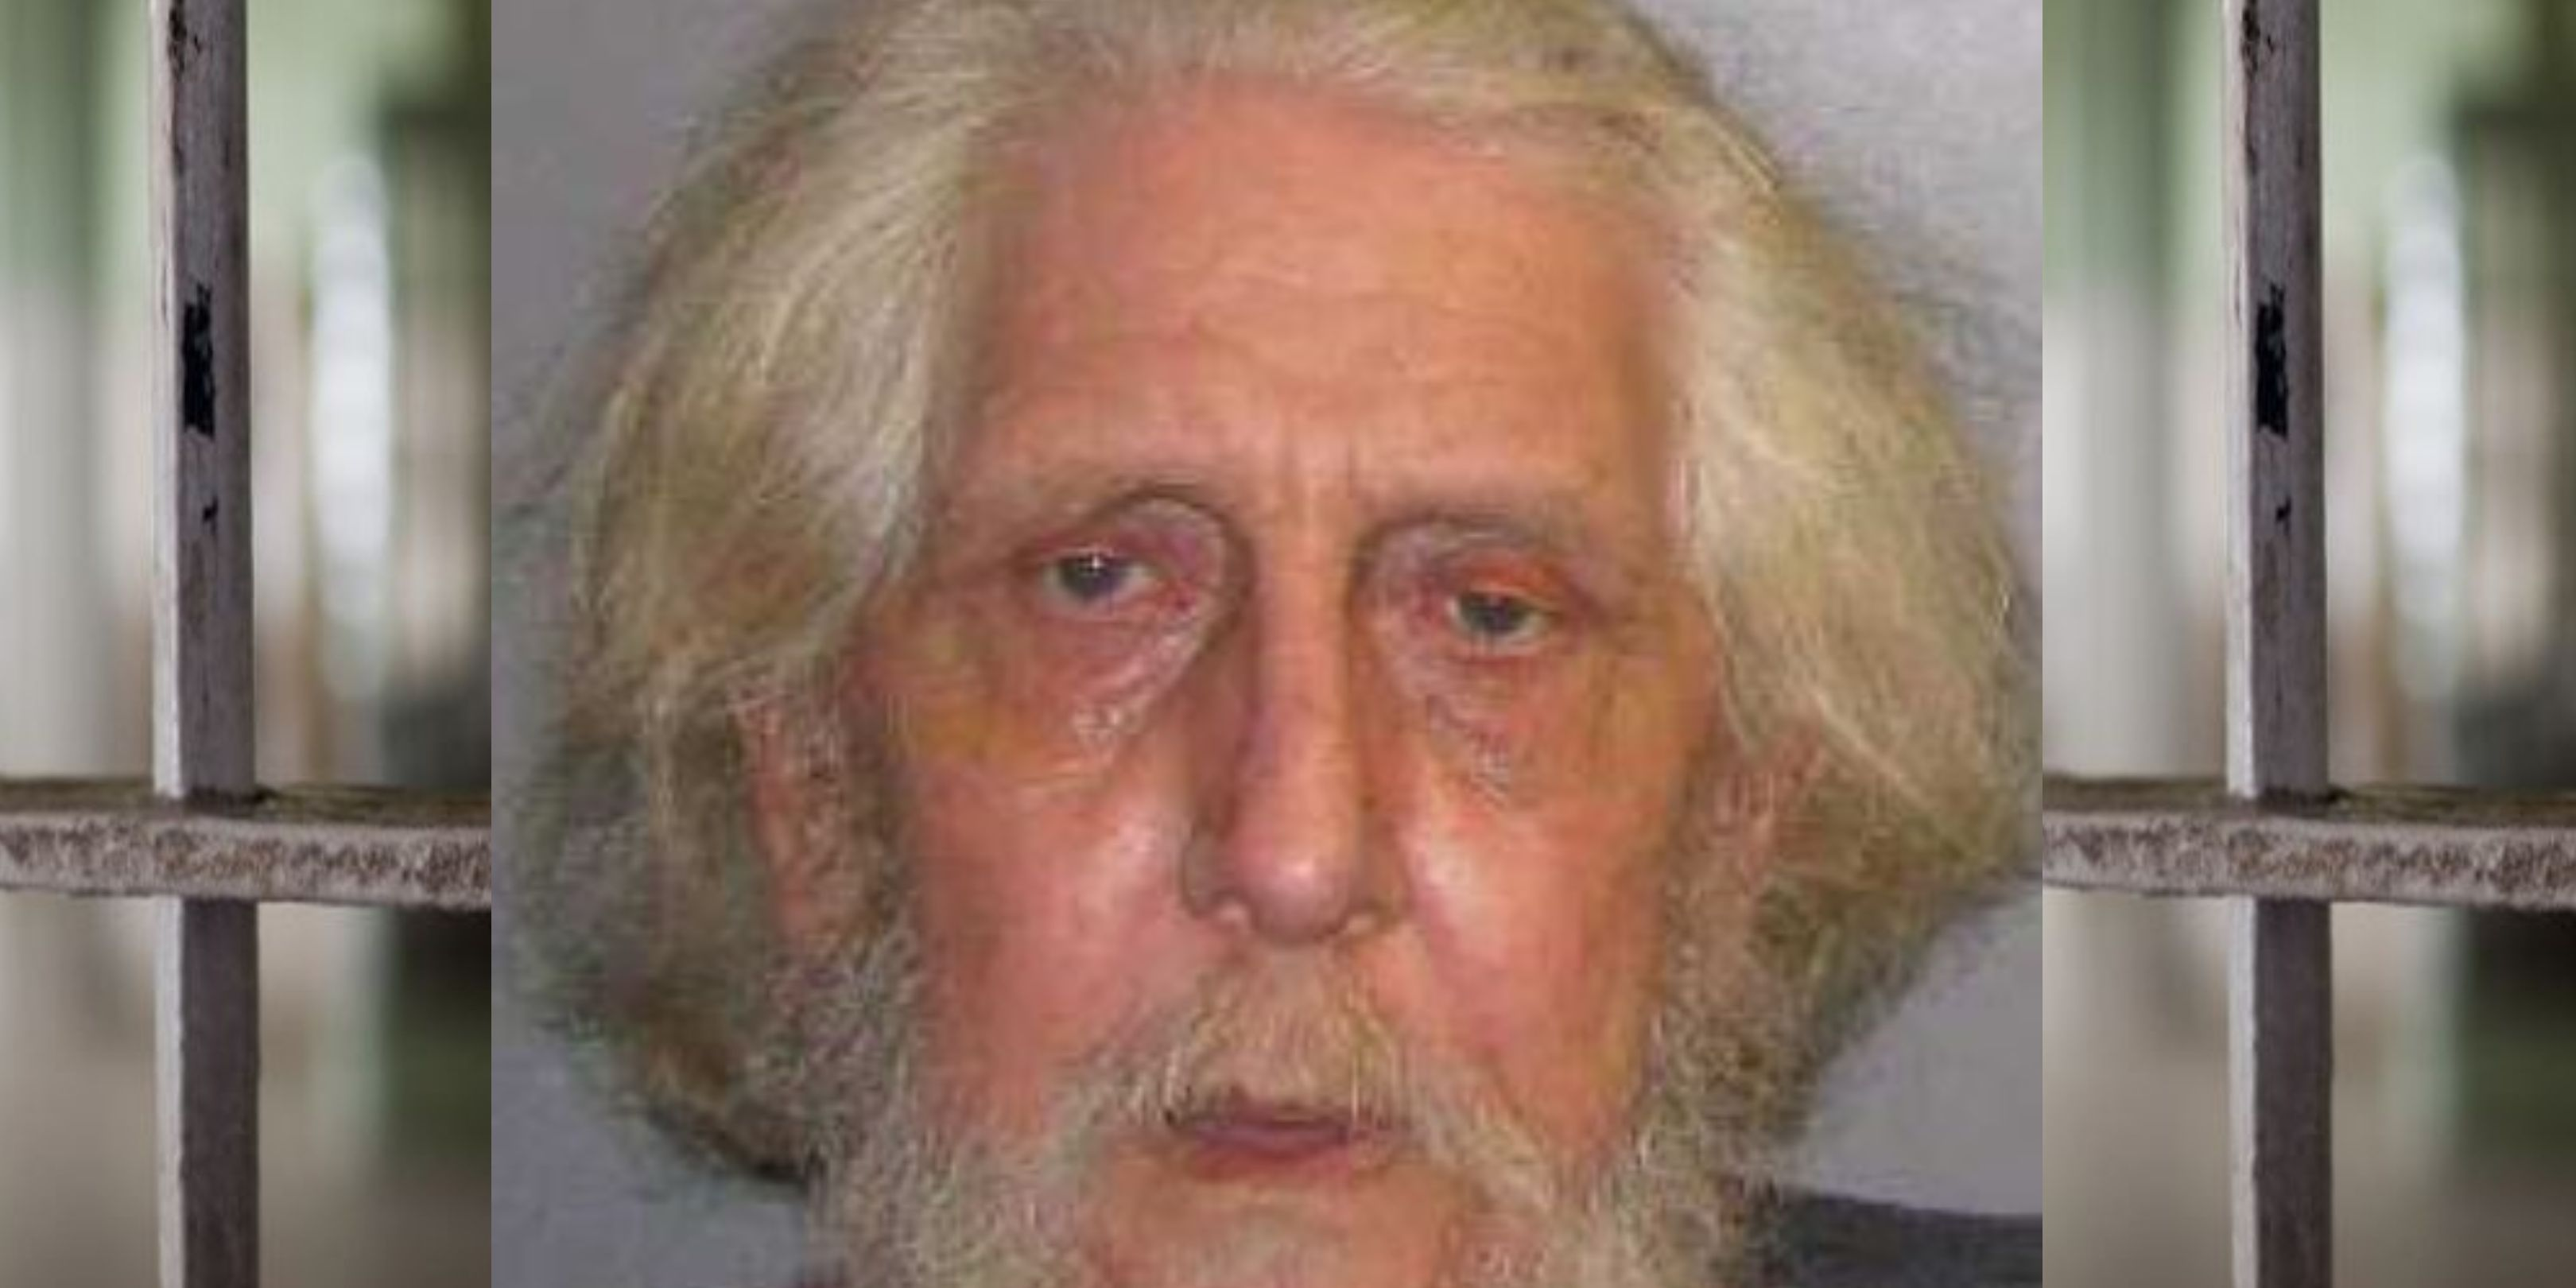 Man gets jail time for leaving ailing wife unattended on couch for months